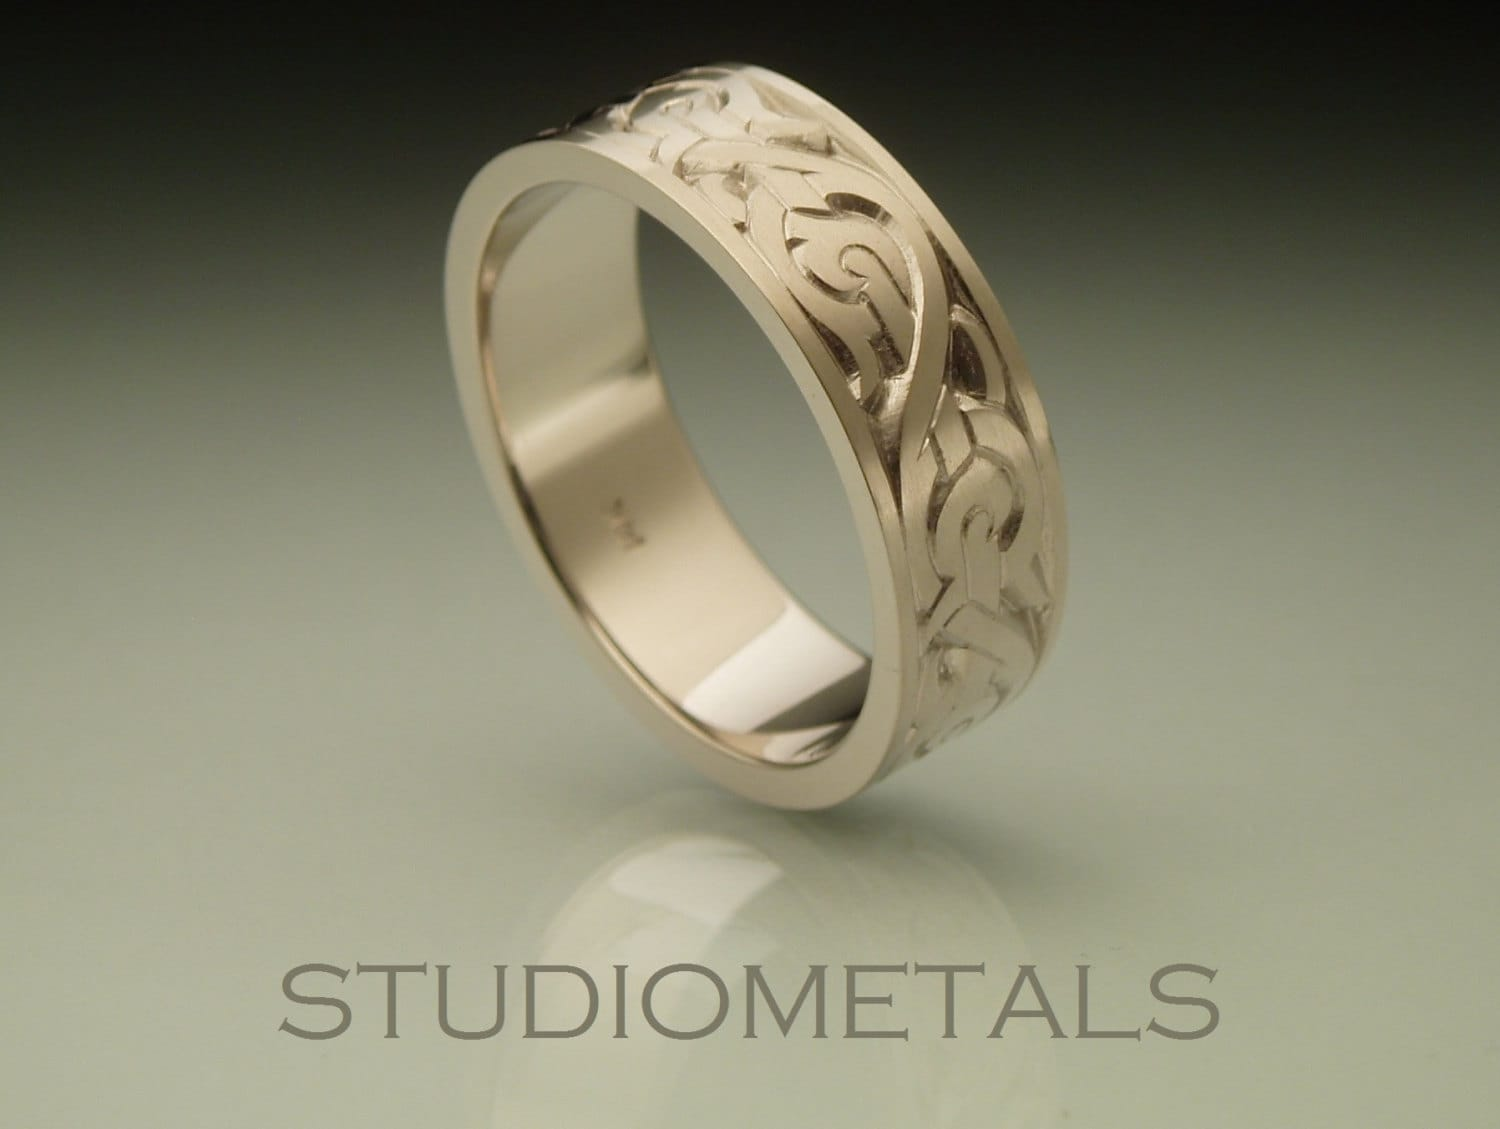 bees your nordic topic see s scandinavian lets let img wedding rings